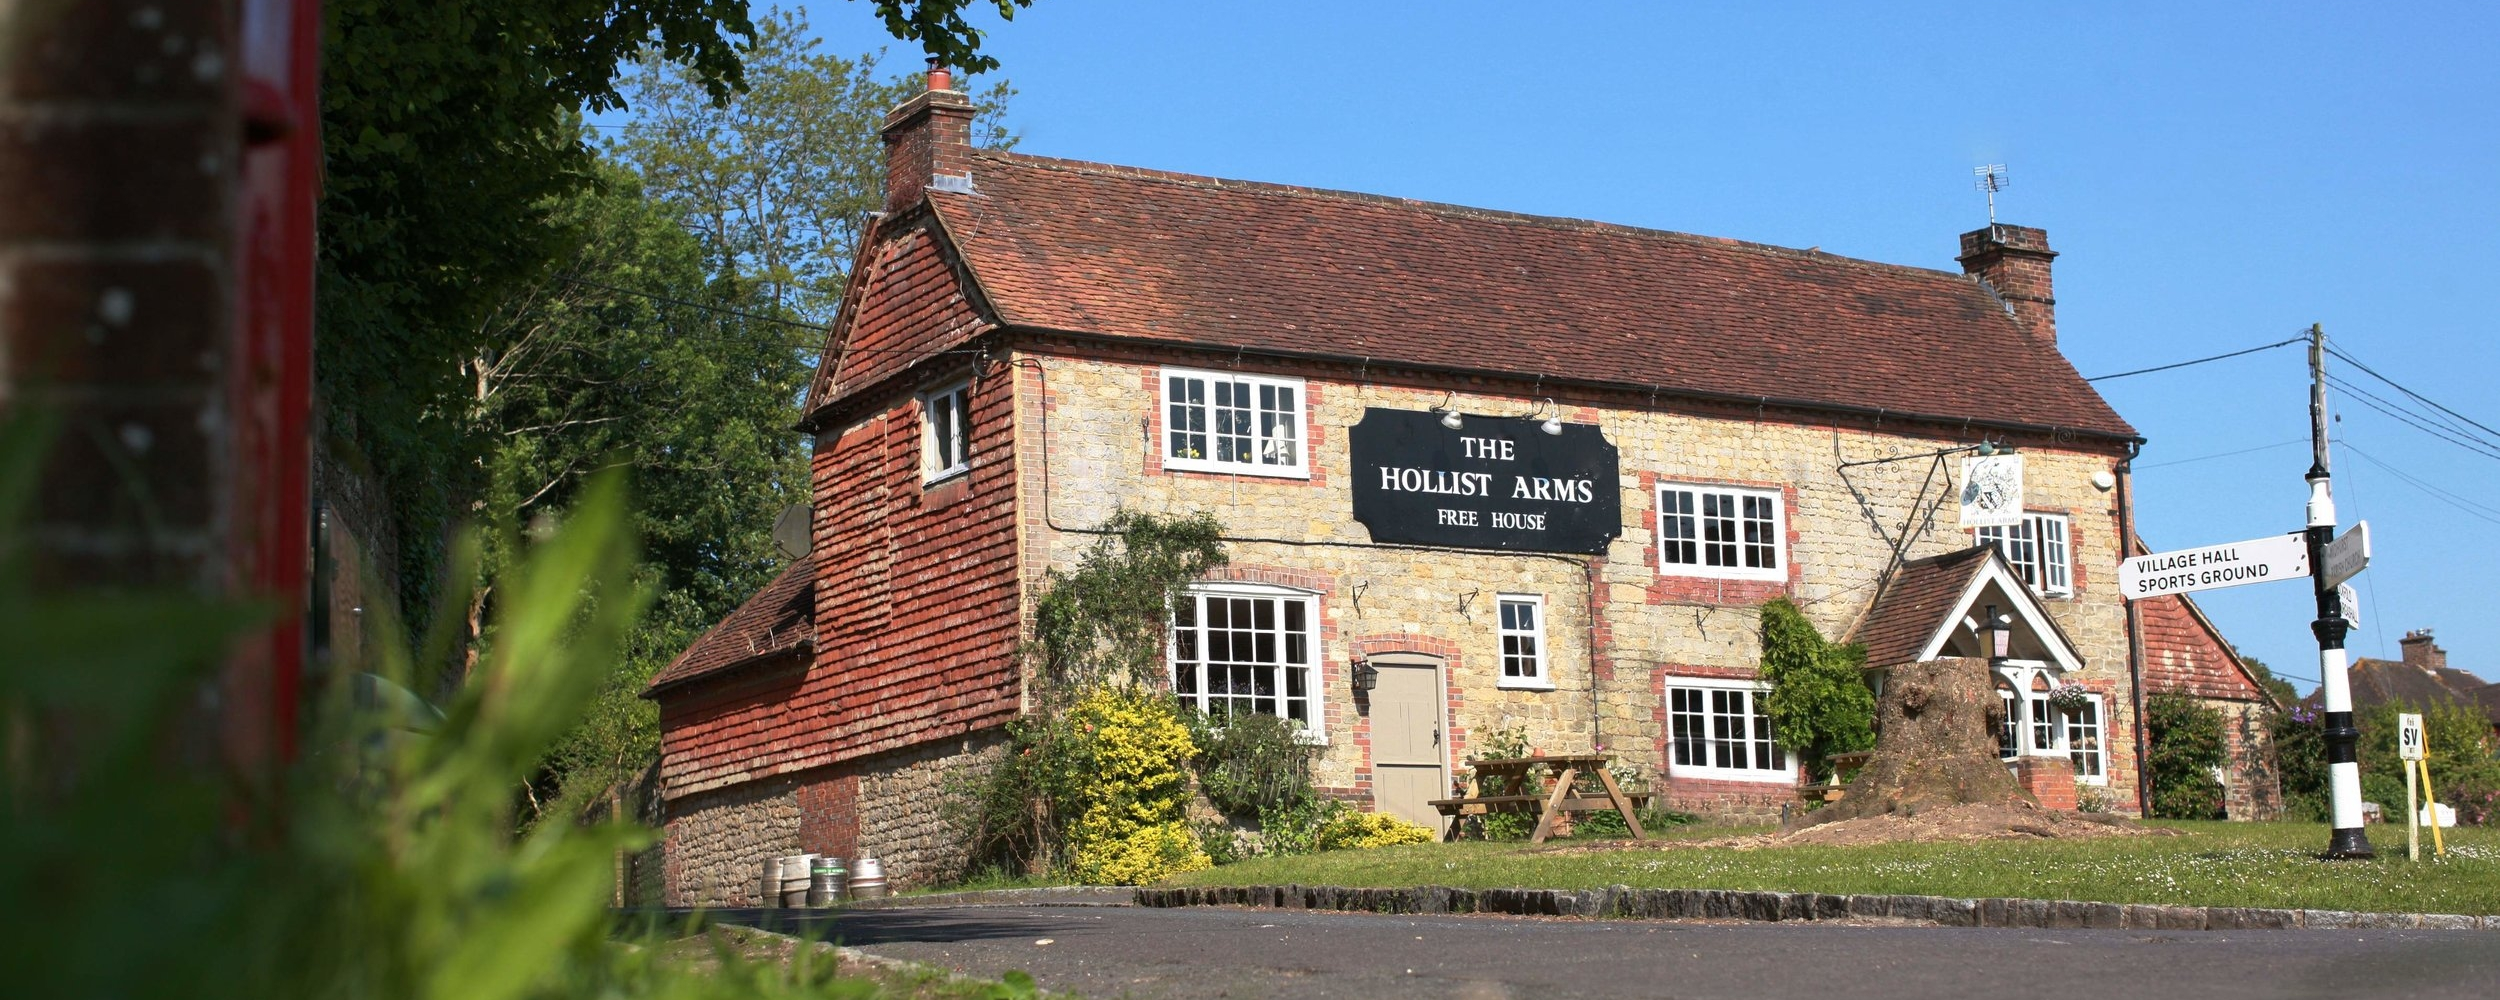 Hollist Arms outside